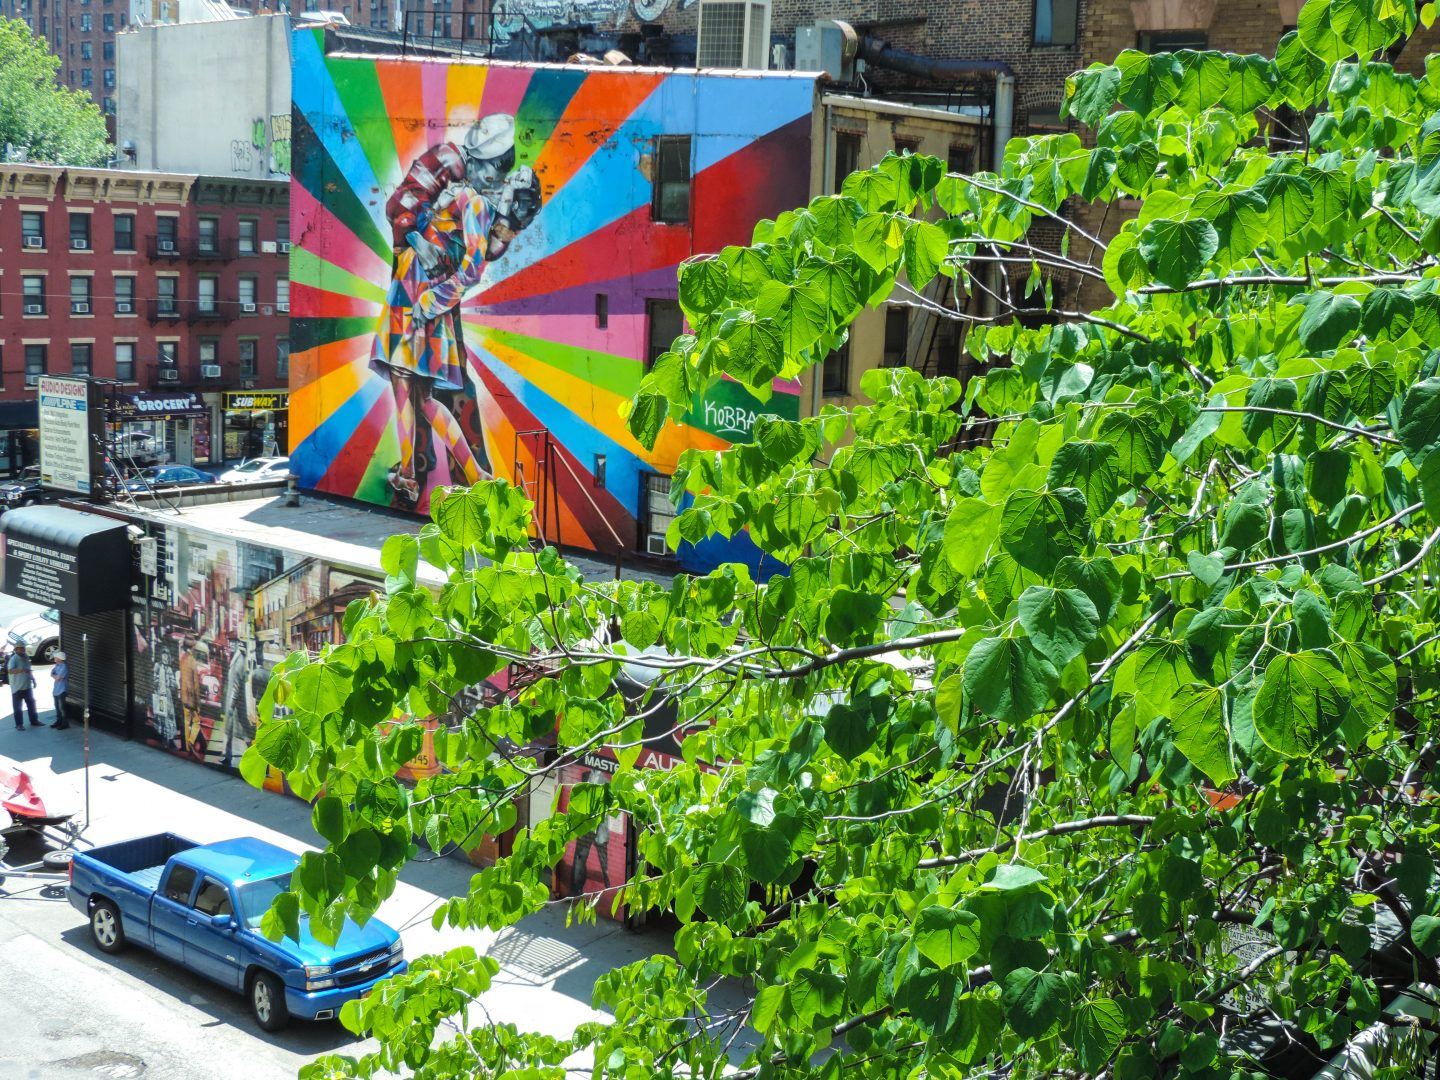 Postcards from New York City: The High Line